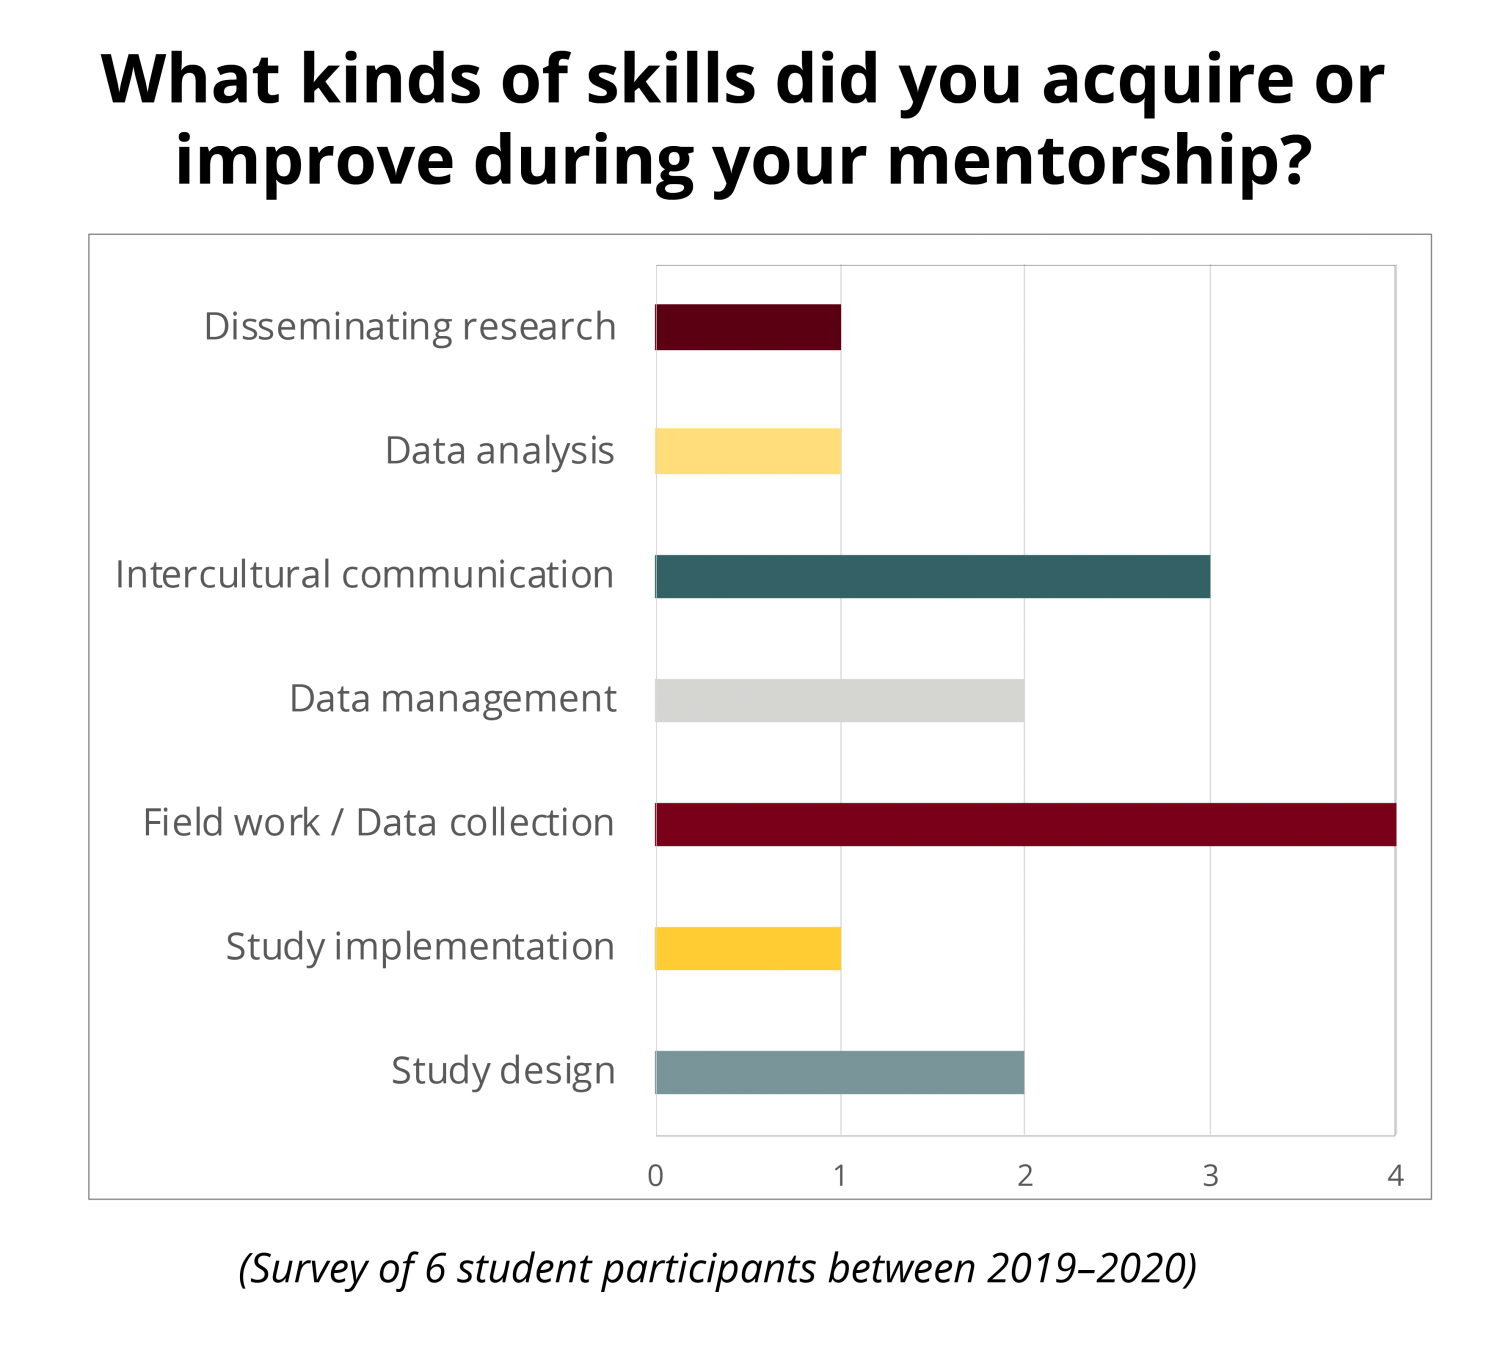 """Bar graph with the question """"What kinds of skills did you acquire or improve during your mentorship?"""". Responses include study design, implementation, fieldwork, data management, and data analysis."""